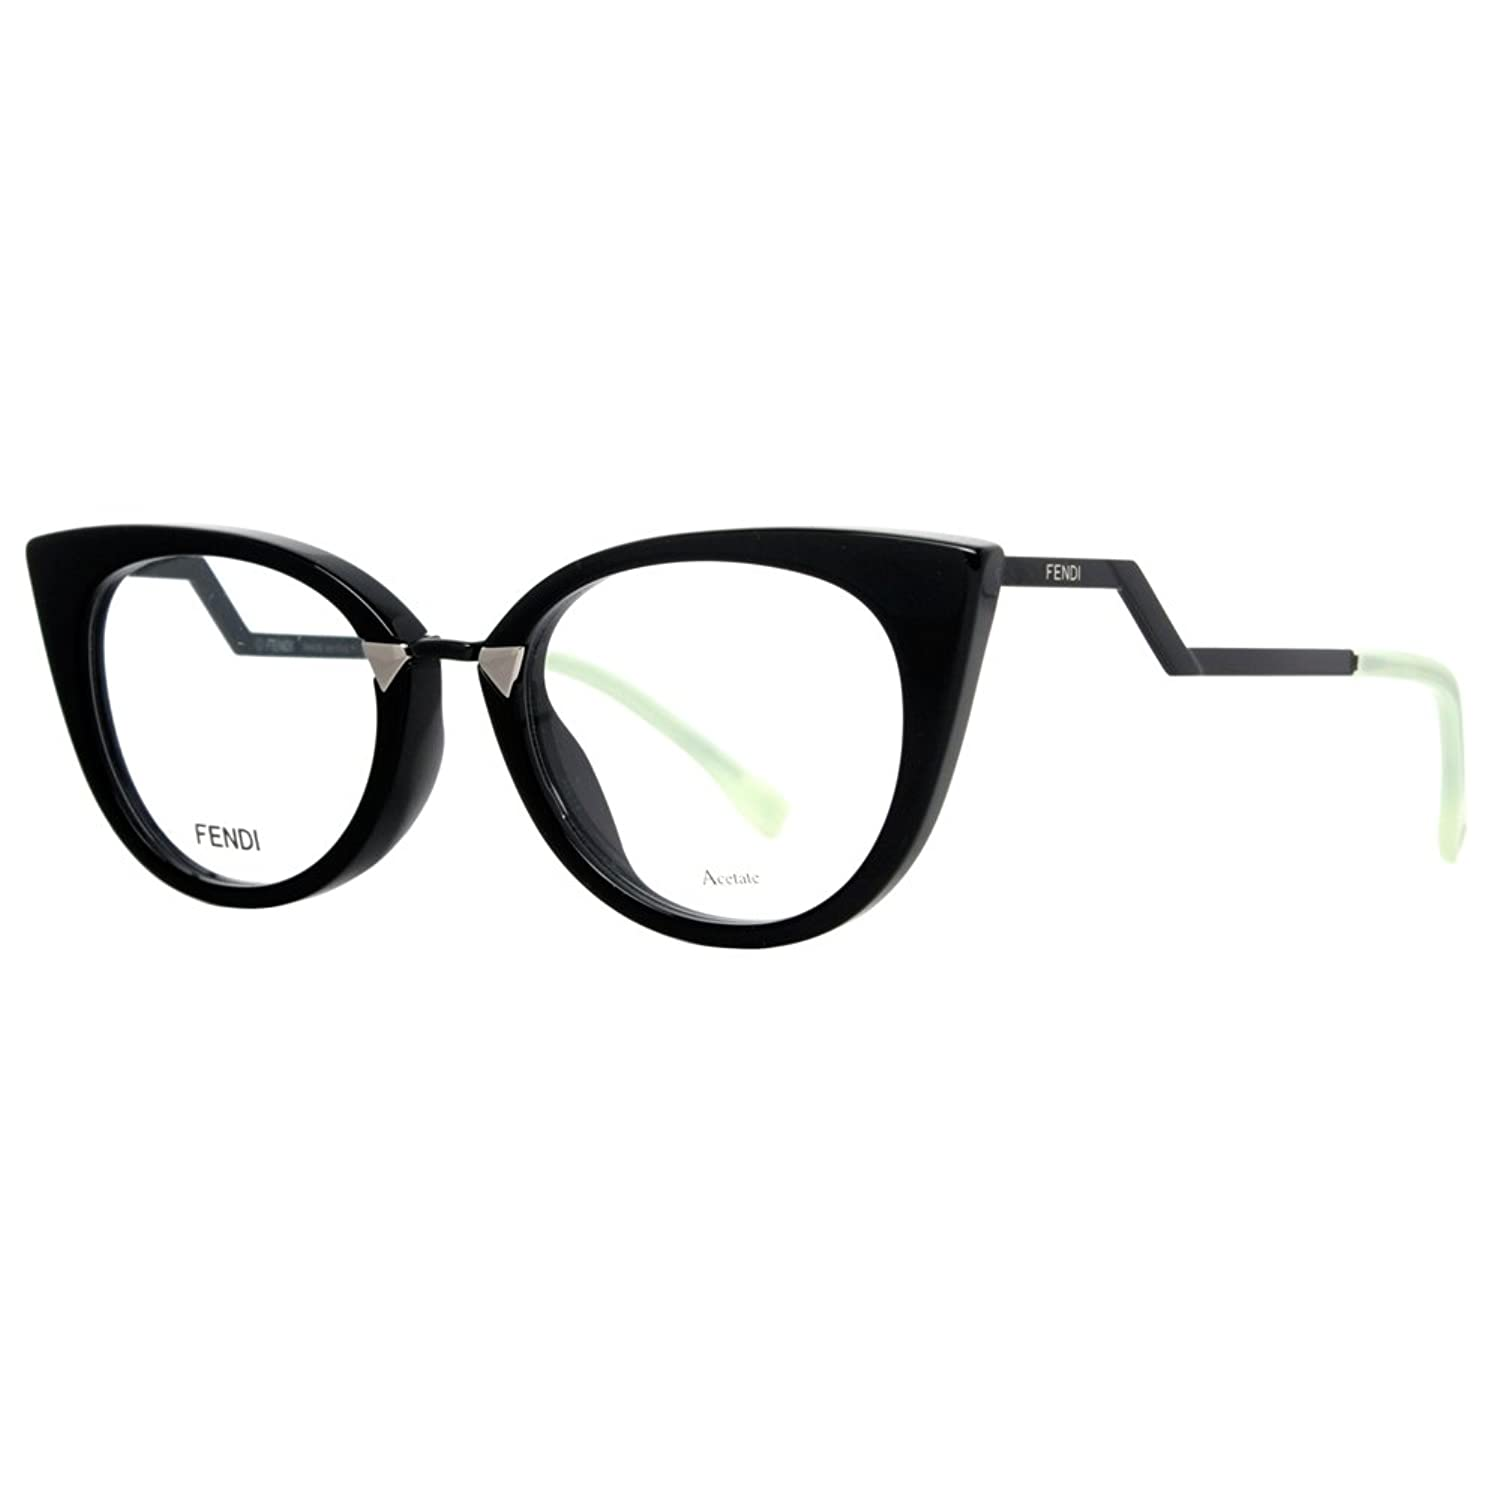 Colorful Fendi Eyeglass Frames Elaboration - Picture Frame Ideas ...